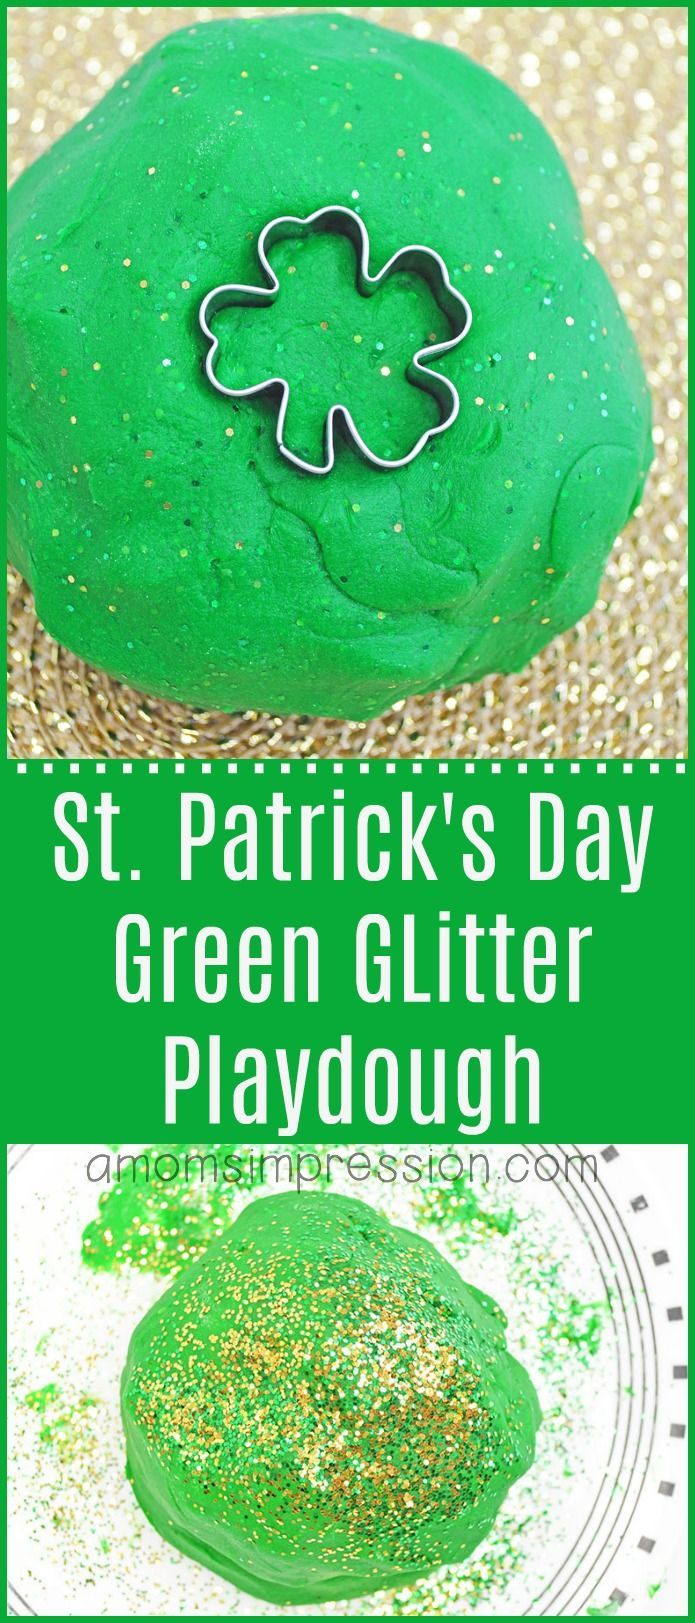 Make this fun homemade St. Patrick's Day playdough recipe for your kids.  Glitter playdough is an easy and fun activity to DIY with your toddler.  They can create and let their imaginations go wild! #playdough #DIY  #crafts #StPatricksDay